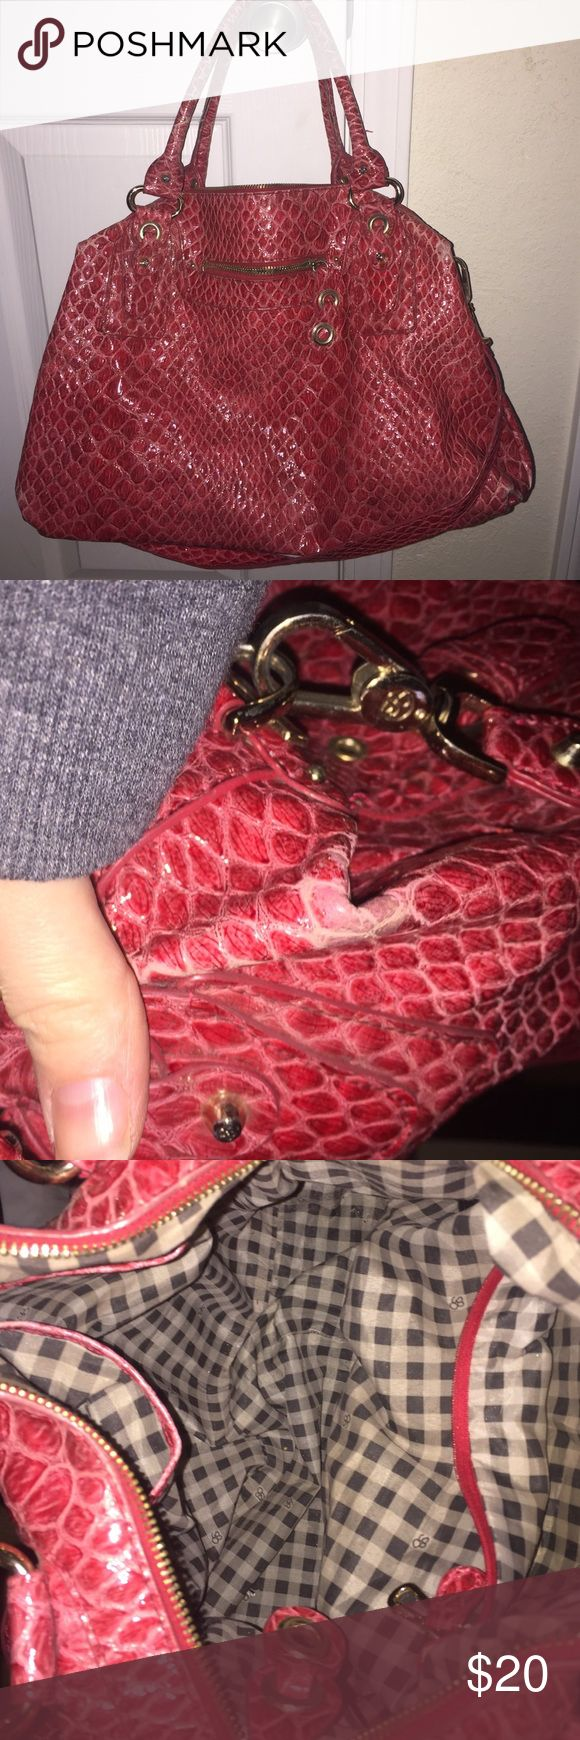 """Jessica Simpson red """"snakeskin"""" purse. Black and white gingham interior.  Some spots of the exterior are worn but not horrible. Has long strap and handles. Jessica Simpson Bags Satchels"""